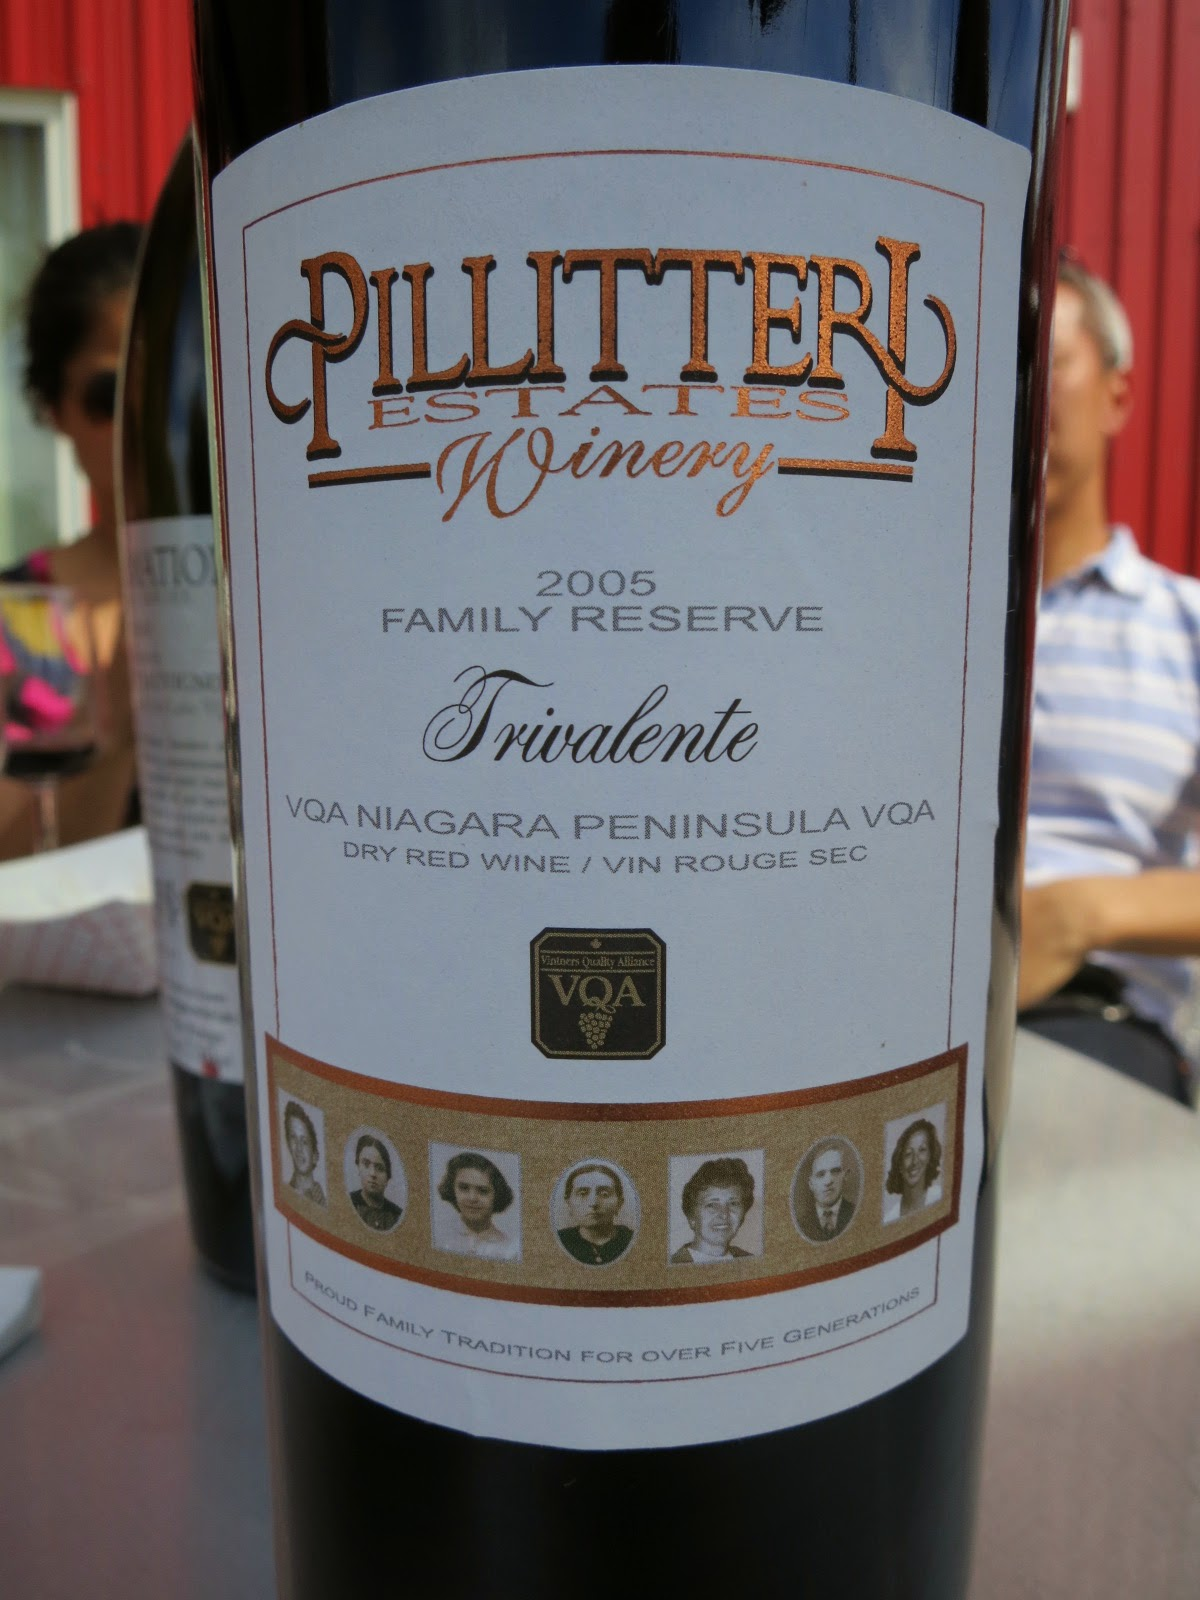 Wine Review of 2005 Pillitteri Family Reserve Trivalente from VQA Niagara Peninsula